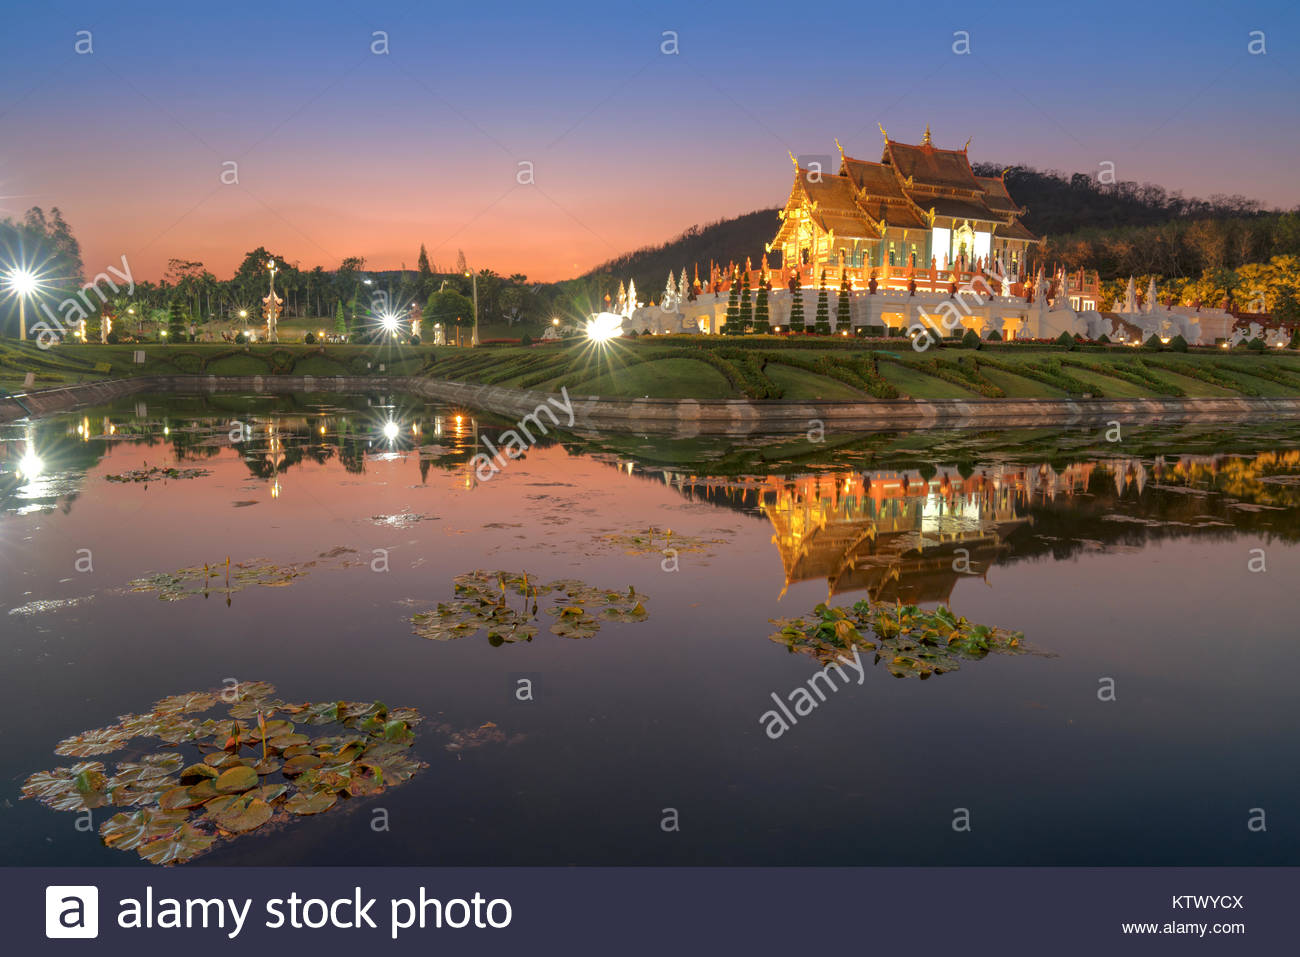 Chiang Mai, Thailand at Royal Flora Ratchaphruek Park. - Stock Image